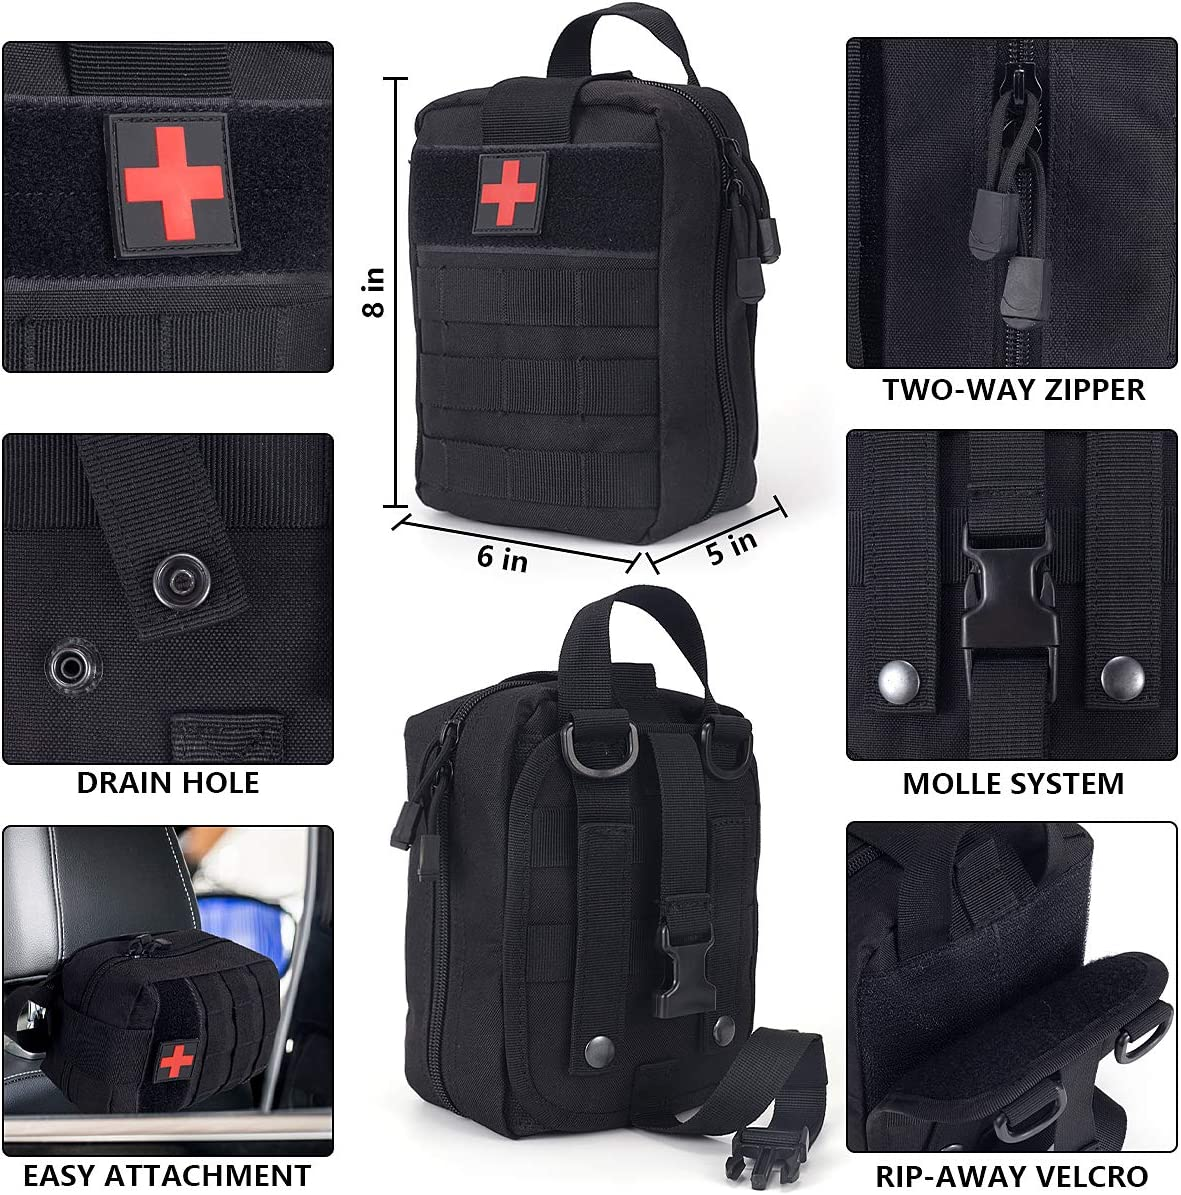 Survival First Aid Kit Molle System Compatible Outdoor Gear Emergency Kits Trauma Bag for Camping Boat Hunting Hiking Home Car Earthquake and Adventures : Sports & Outdoors